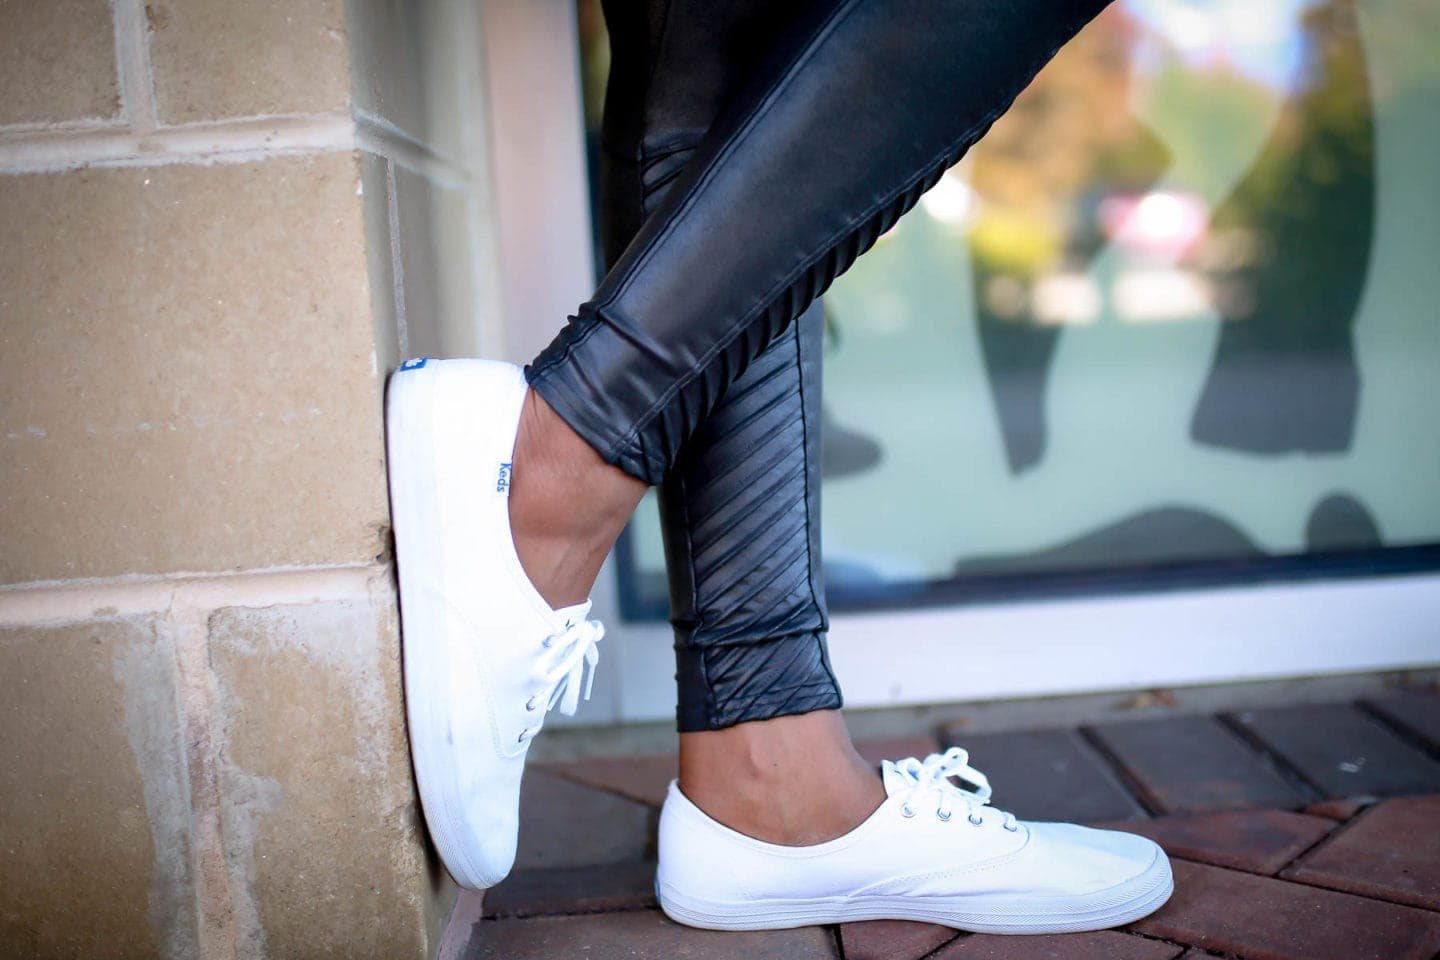 A no-bs Spanx Faux Leather Leggings Review | Here's what I liked and disliked about this super hyped high-end leggings. Worth the money? These are my thoughts.